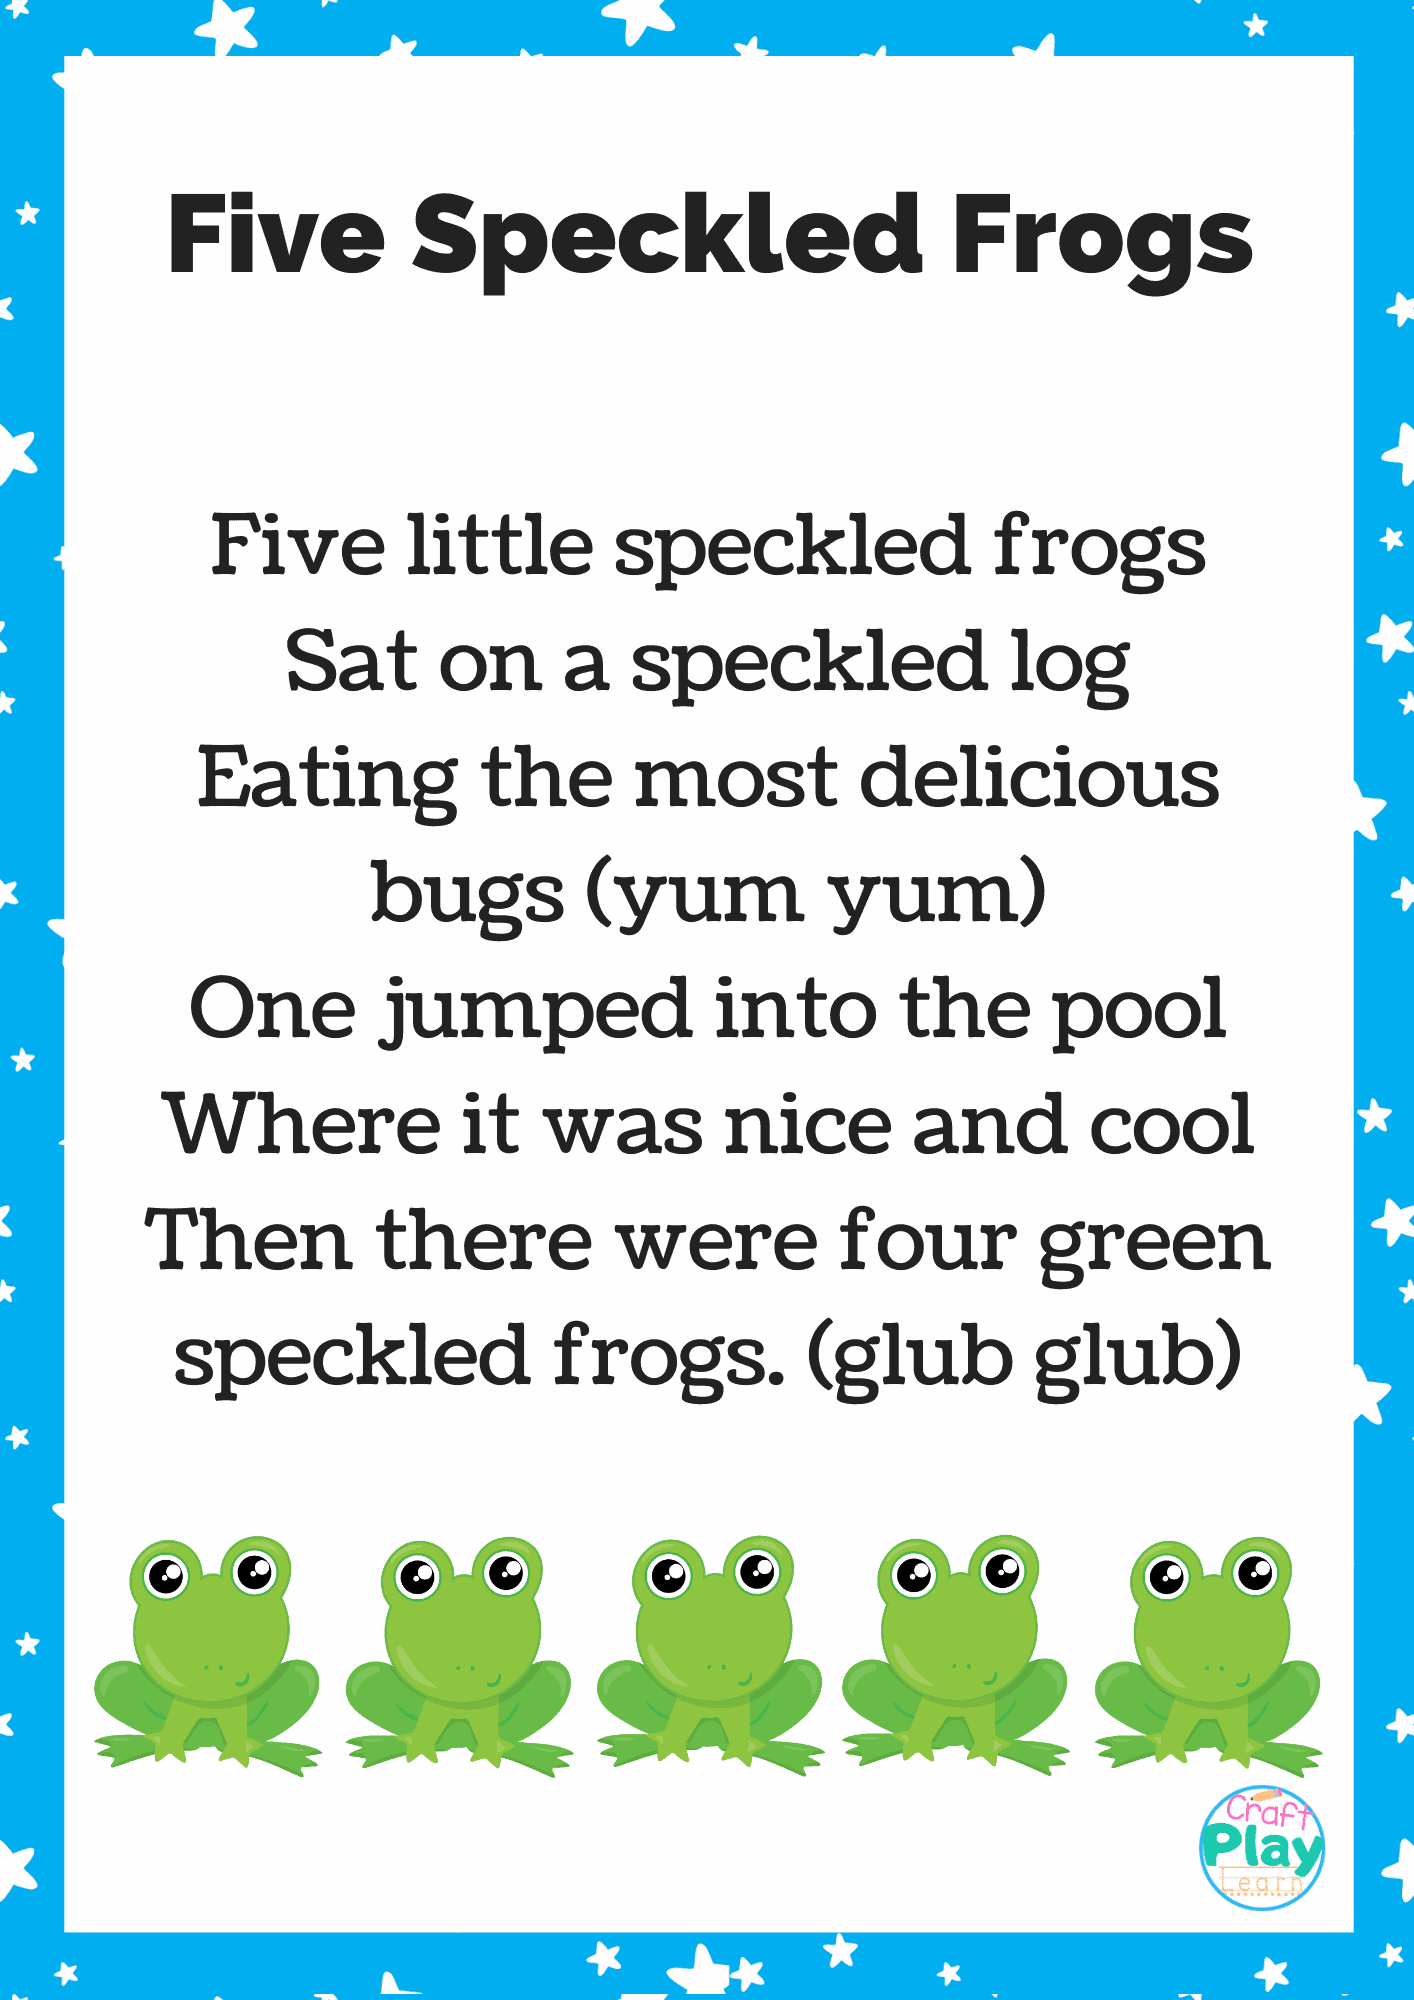 Five Speckled Frogs Printable And Activity Ideas - Craft Play Learn